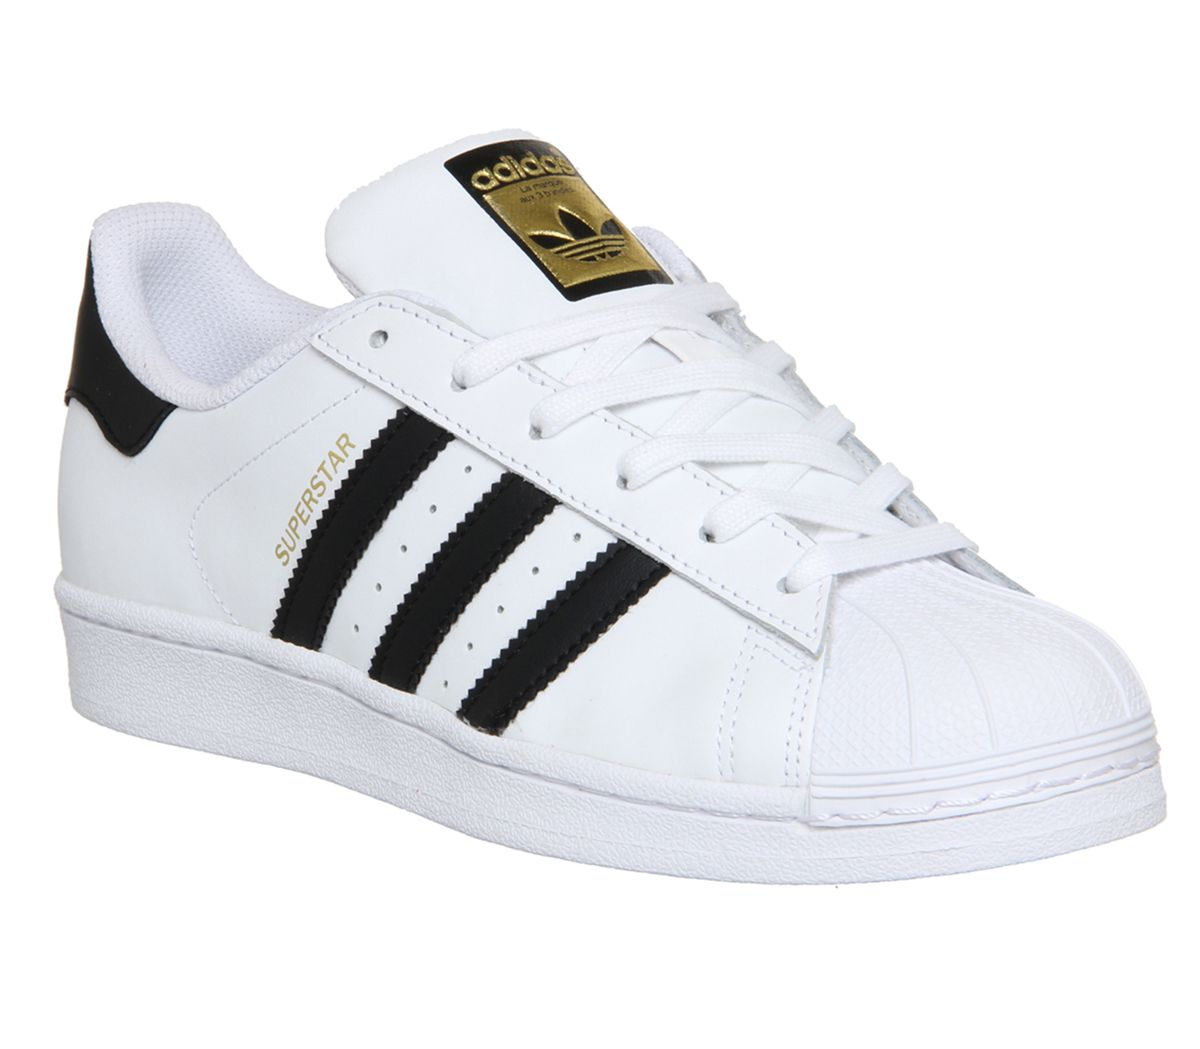 super popular fe1d3 575d7 Superstar Trainers